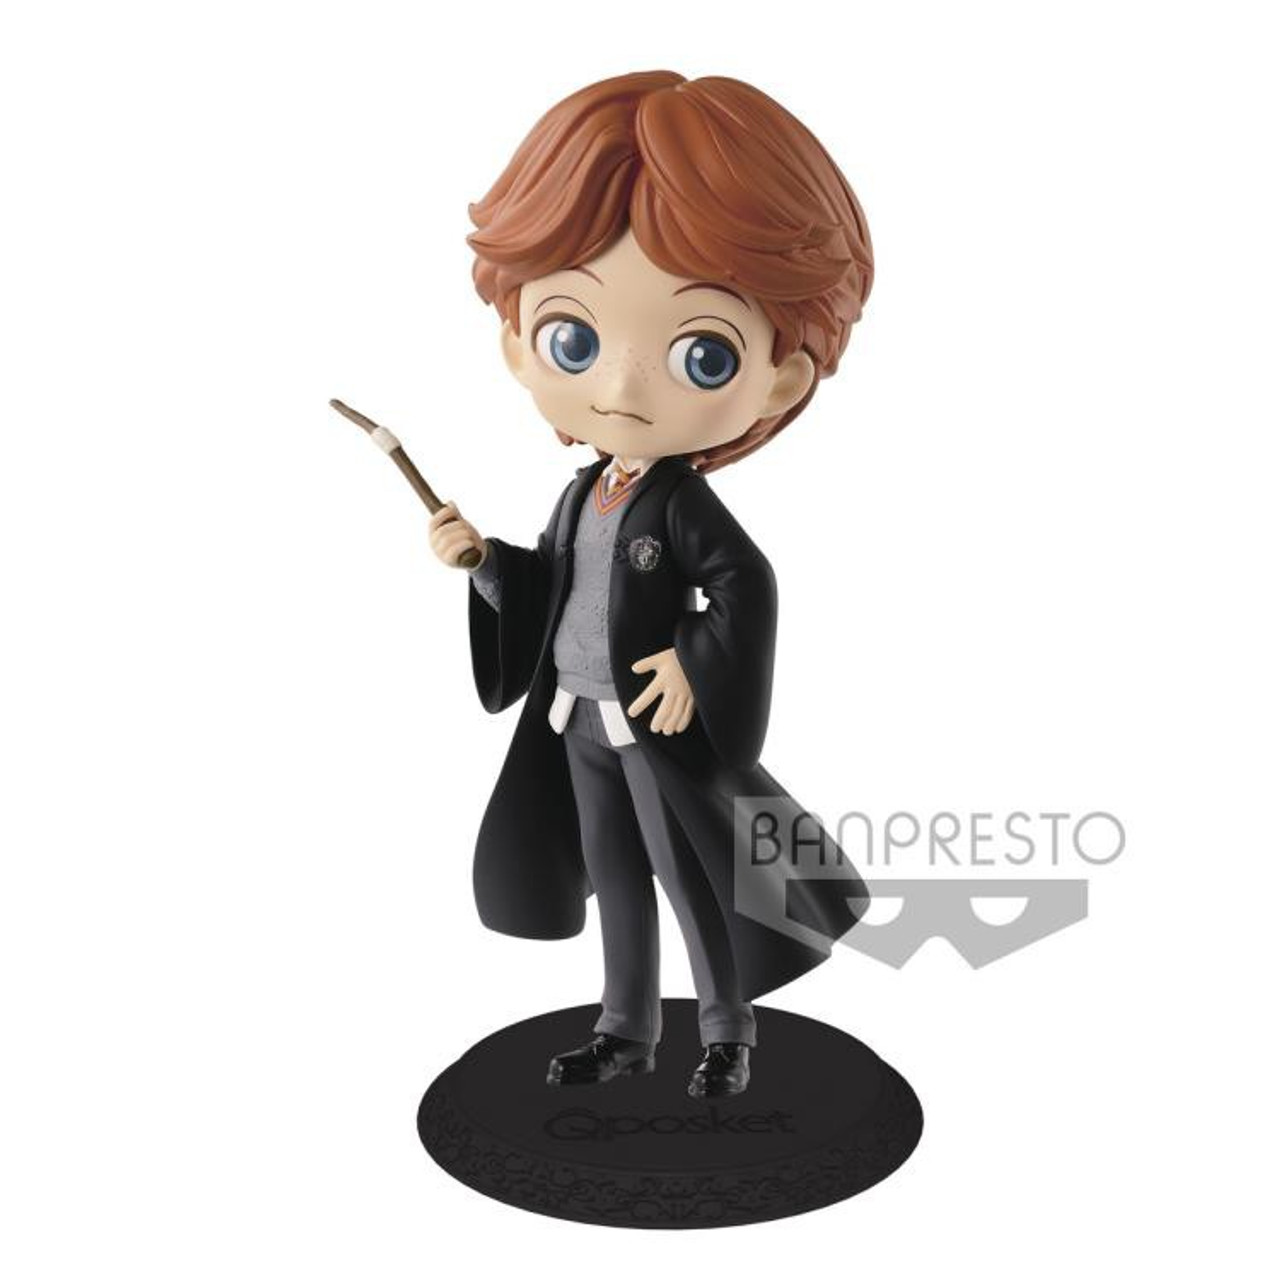 Harry Potter Q Posket Ron Weasley 5.5 Collectible PVC Figure ...